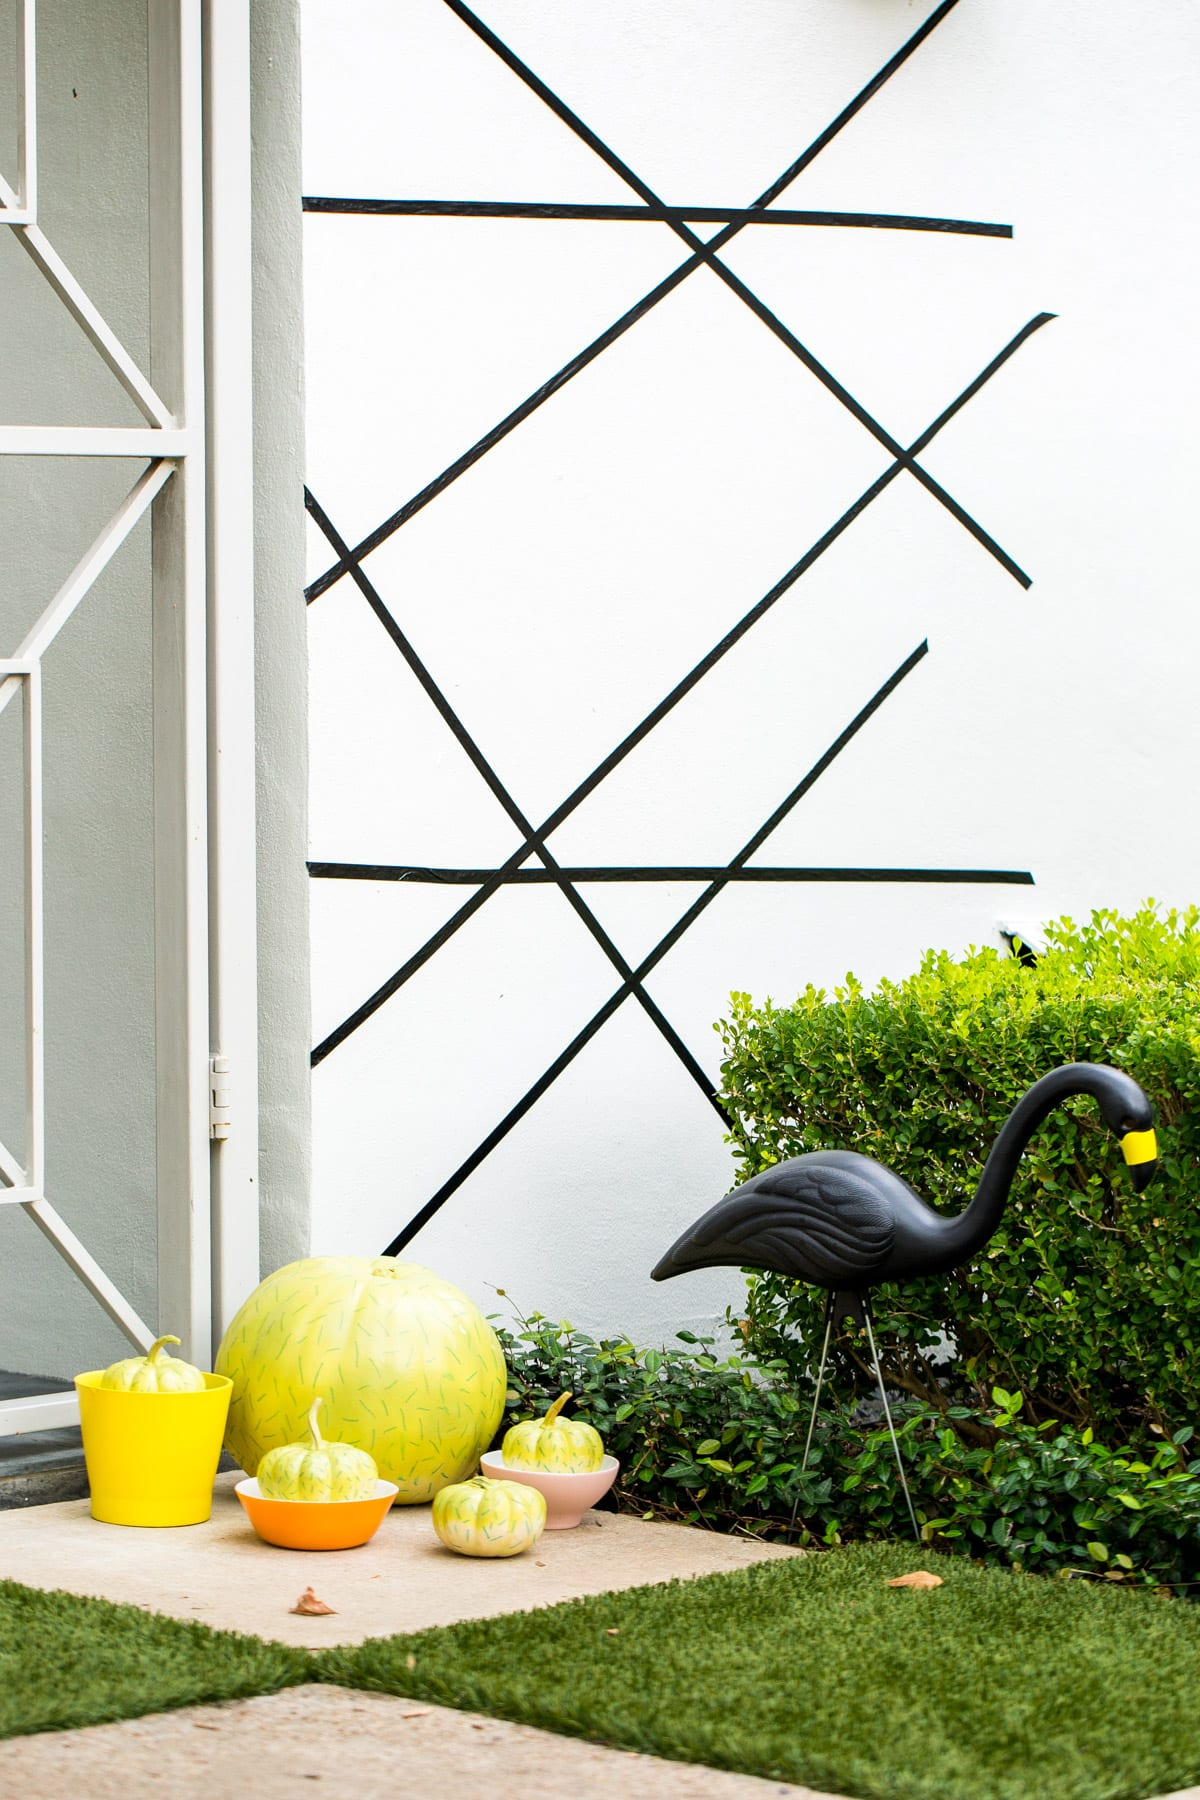 washi tape makes for an easy Palm Springs Inspired Halloween Entryway Decor & Product Round Up by top Houston lifestyle blogger Ashley Rose - #halloweendecor #halloween #decor #home #holidays #curbappeal #palmsprings #midcentury